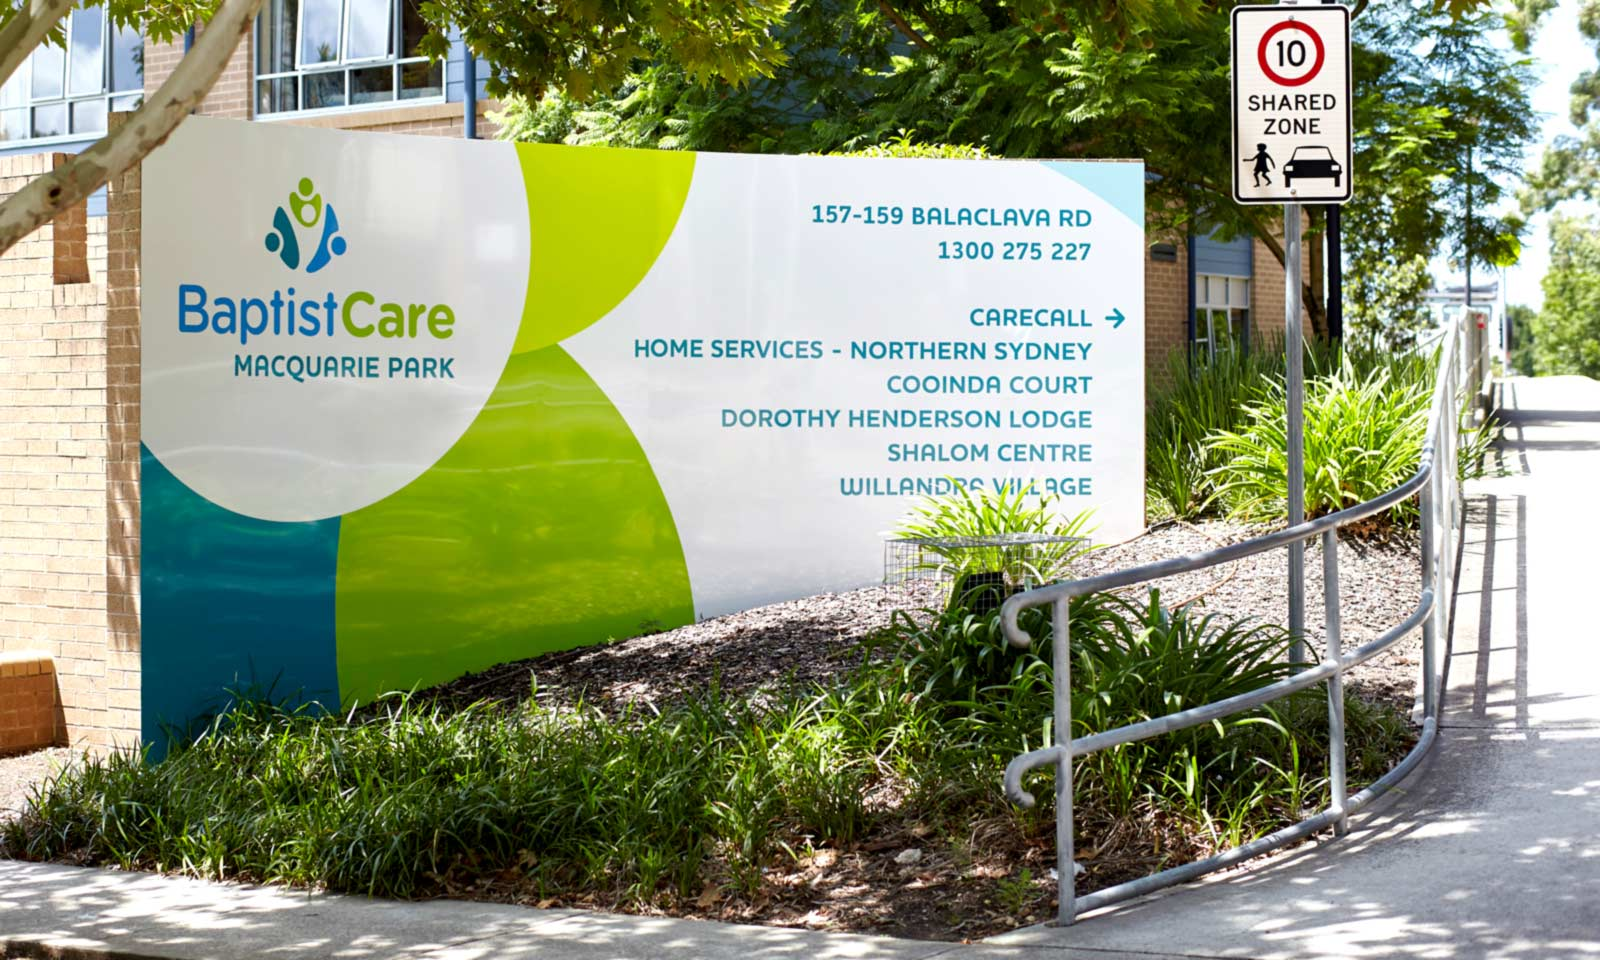 Sydney way finding design, BaptistCare welcome directional signage part of the way-finding system.